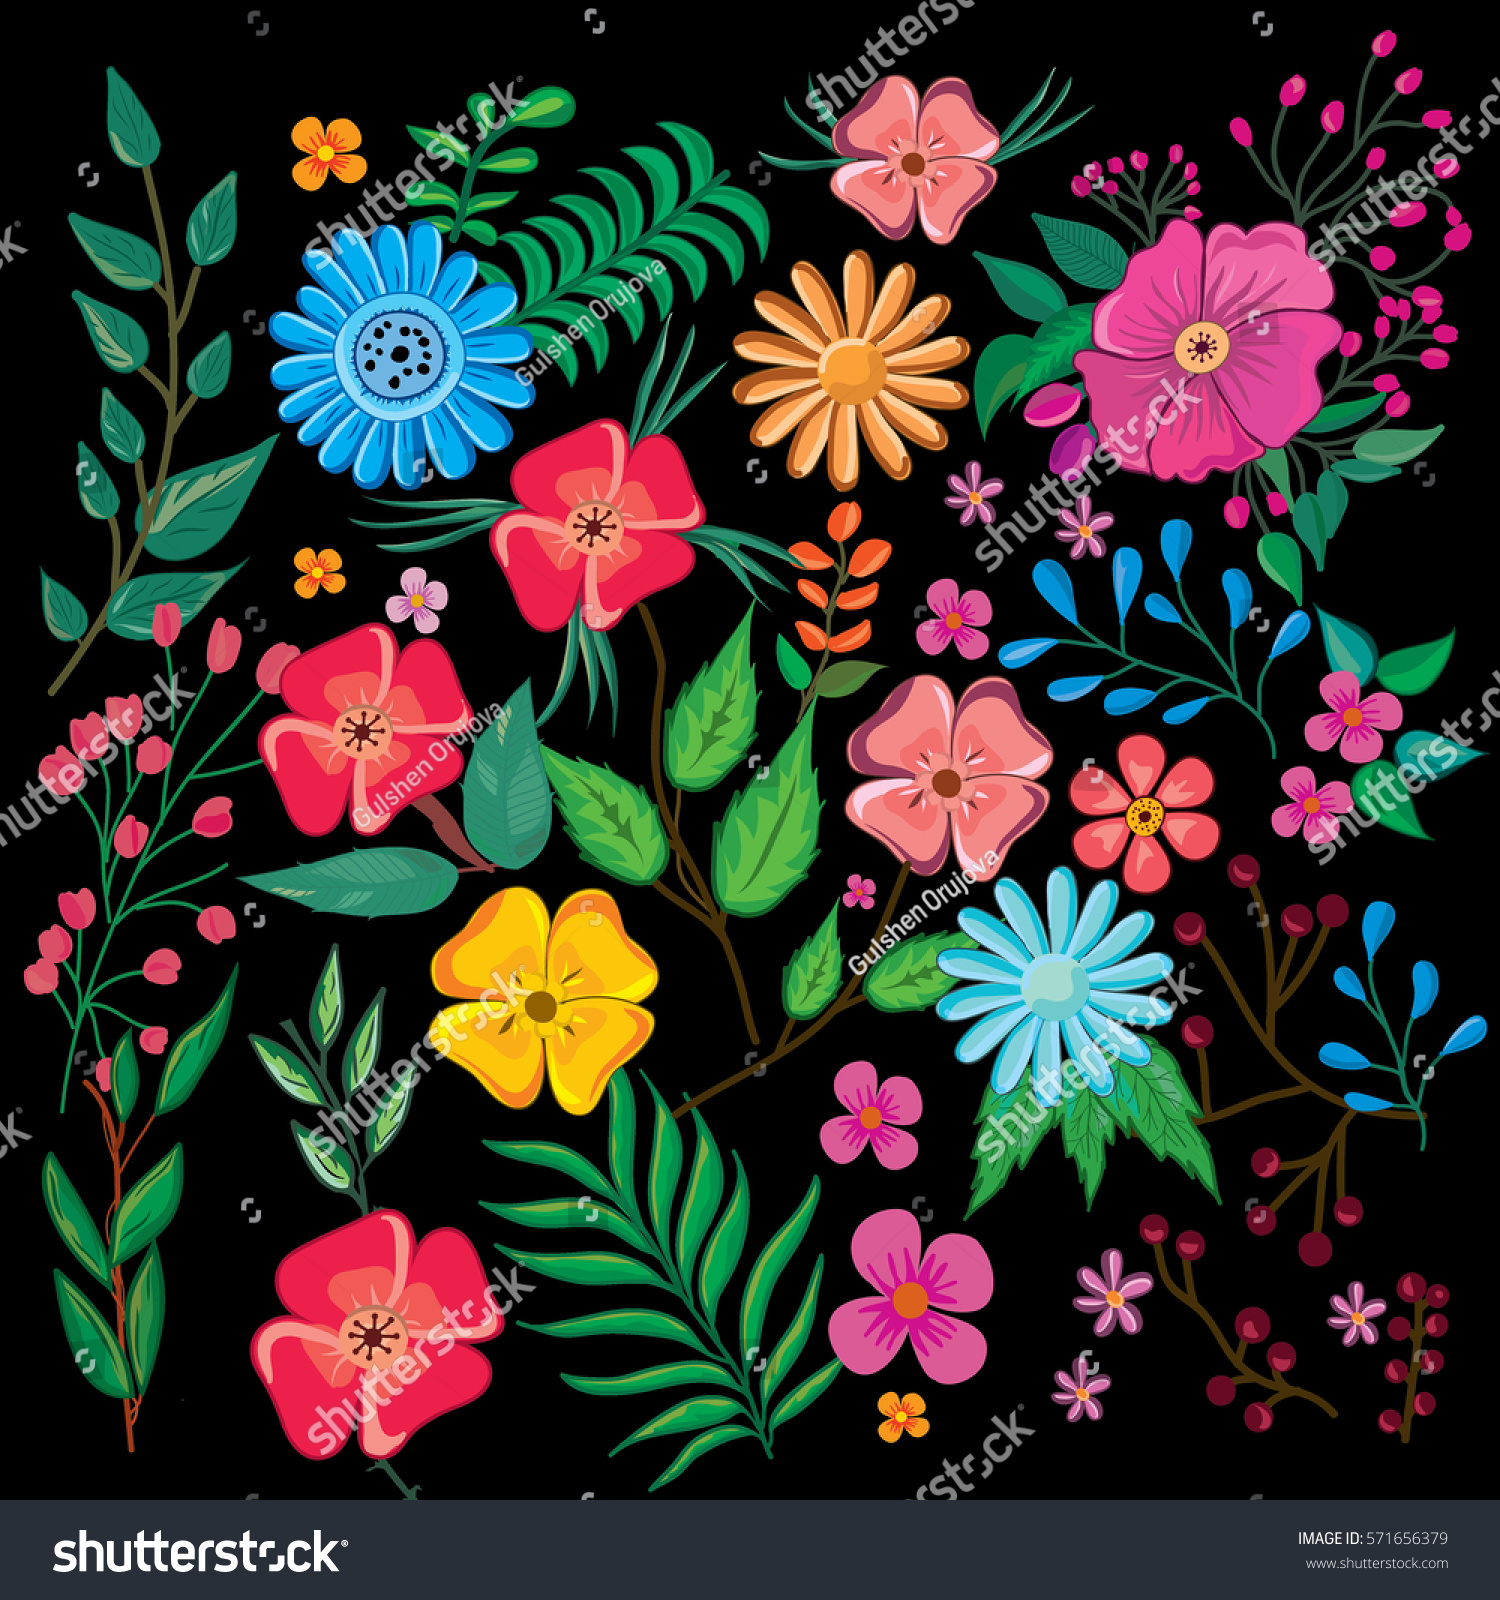 Flowers Pattern On Black Background Colorful Stock Vector Royalty Free 571656379